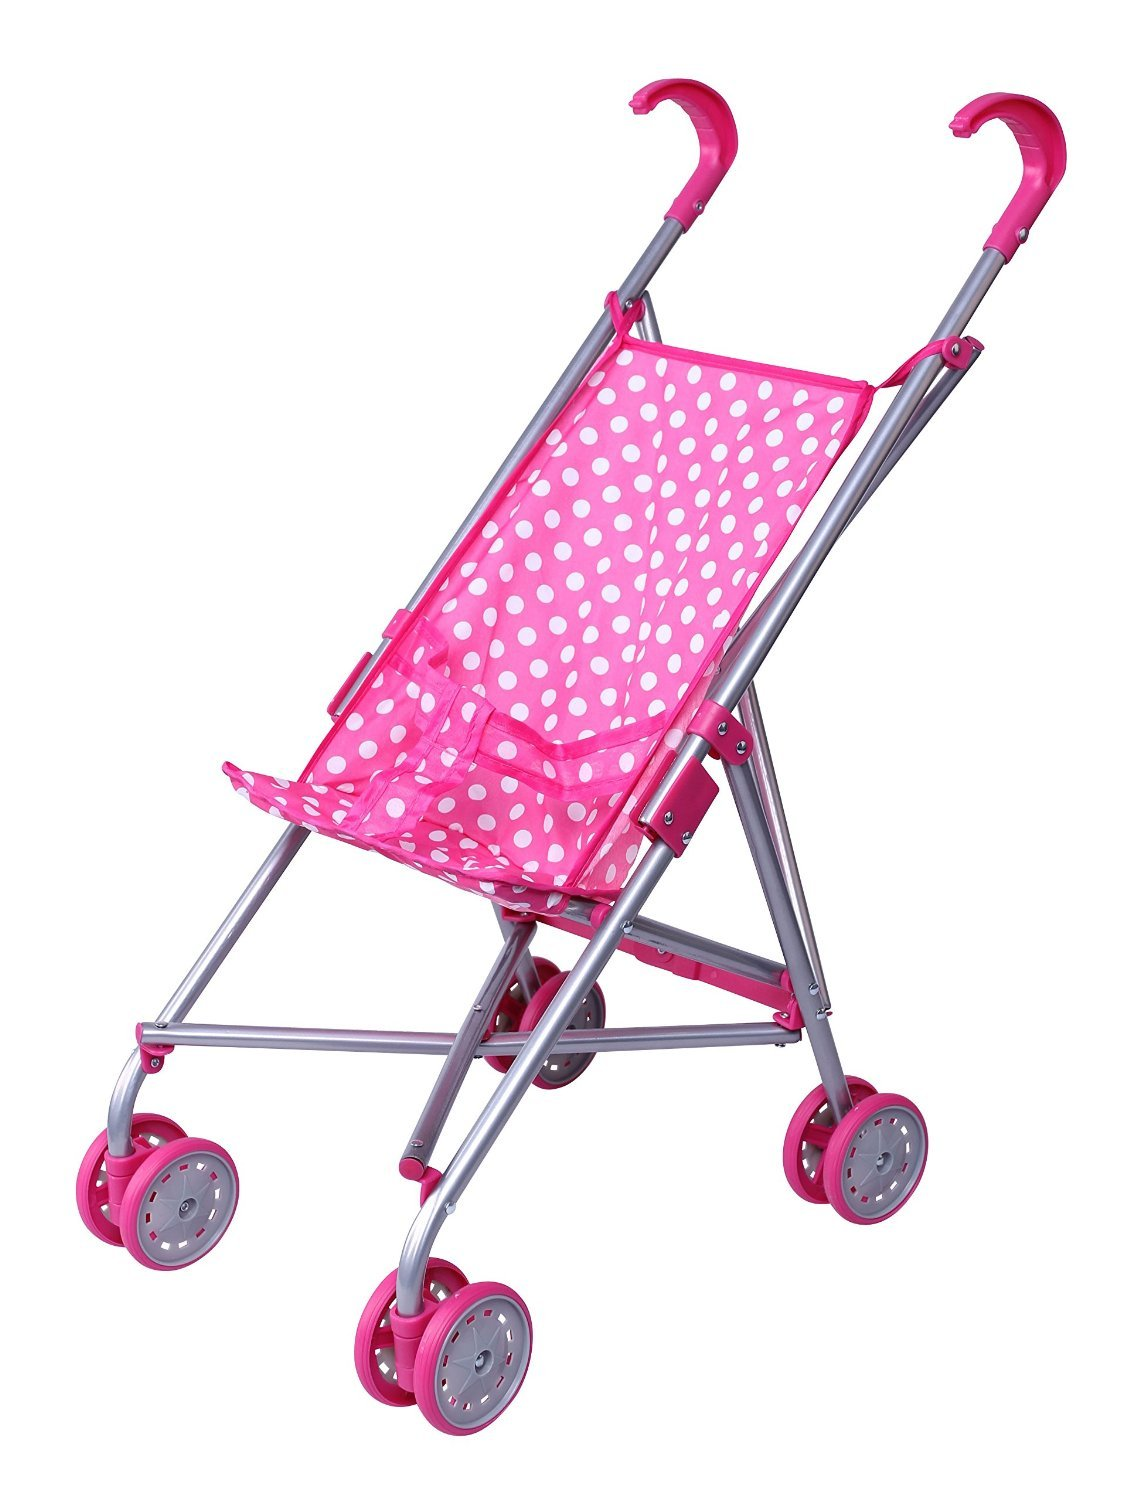 Toys For Strollers : We accept all major credit cards amazon payments and